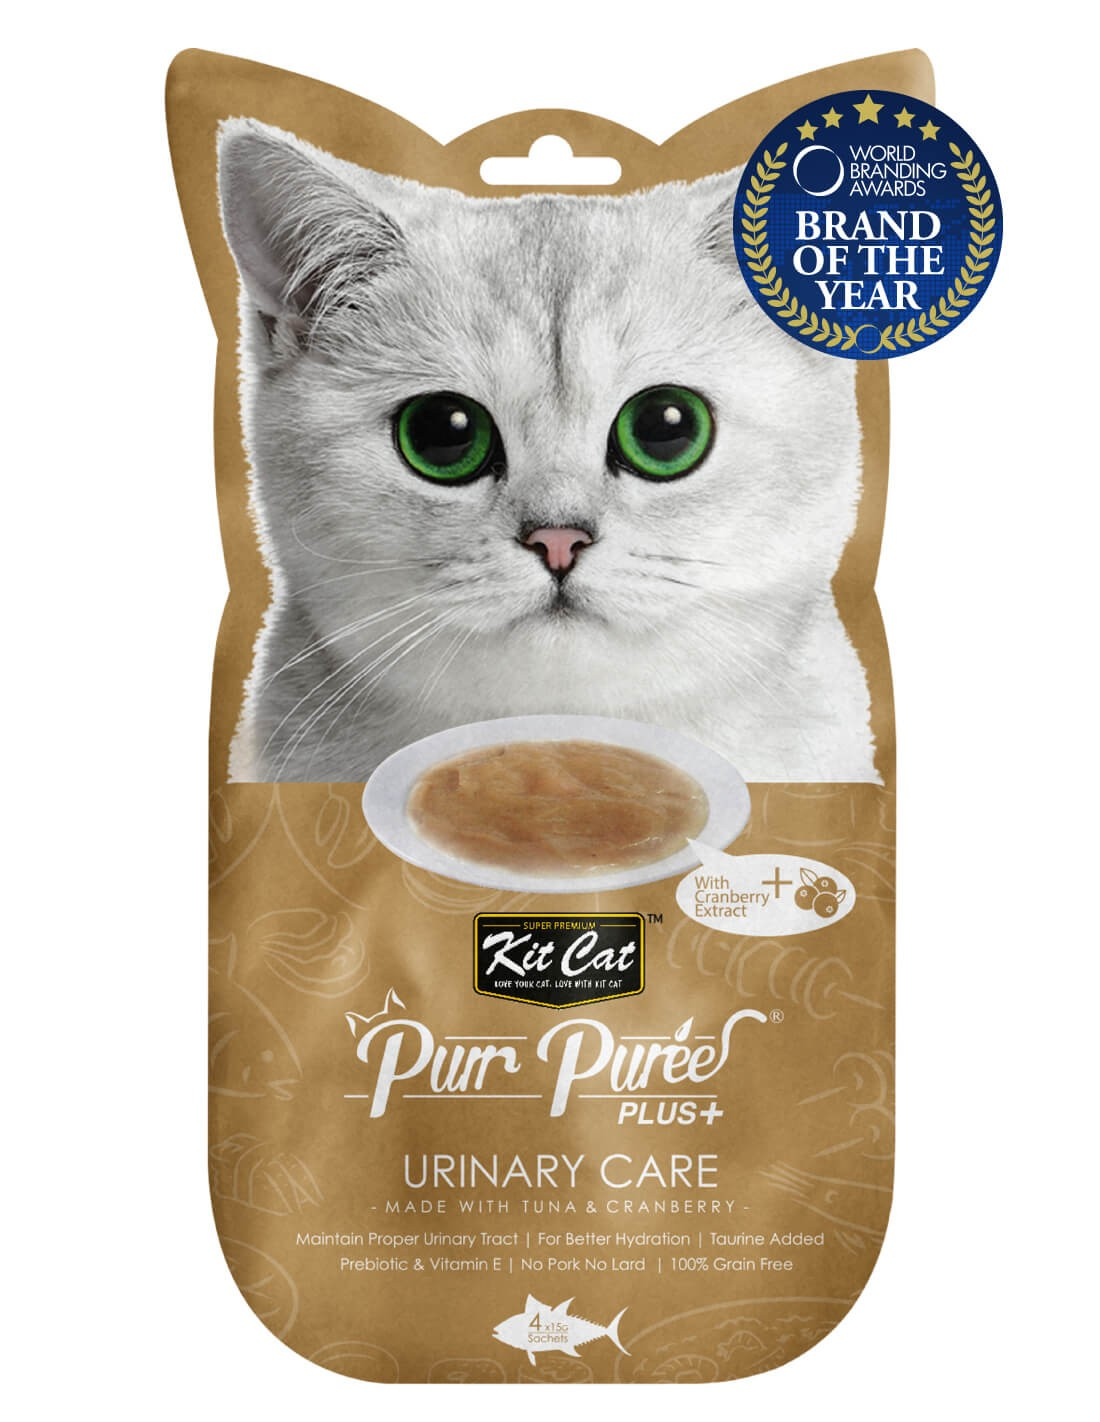 KIT CAT PurrPuree Atún y Arándano - Urinary Care 60g